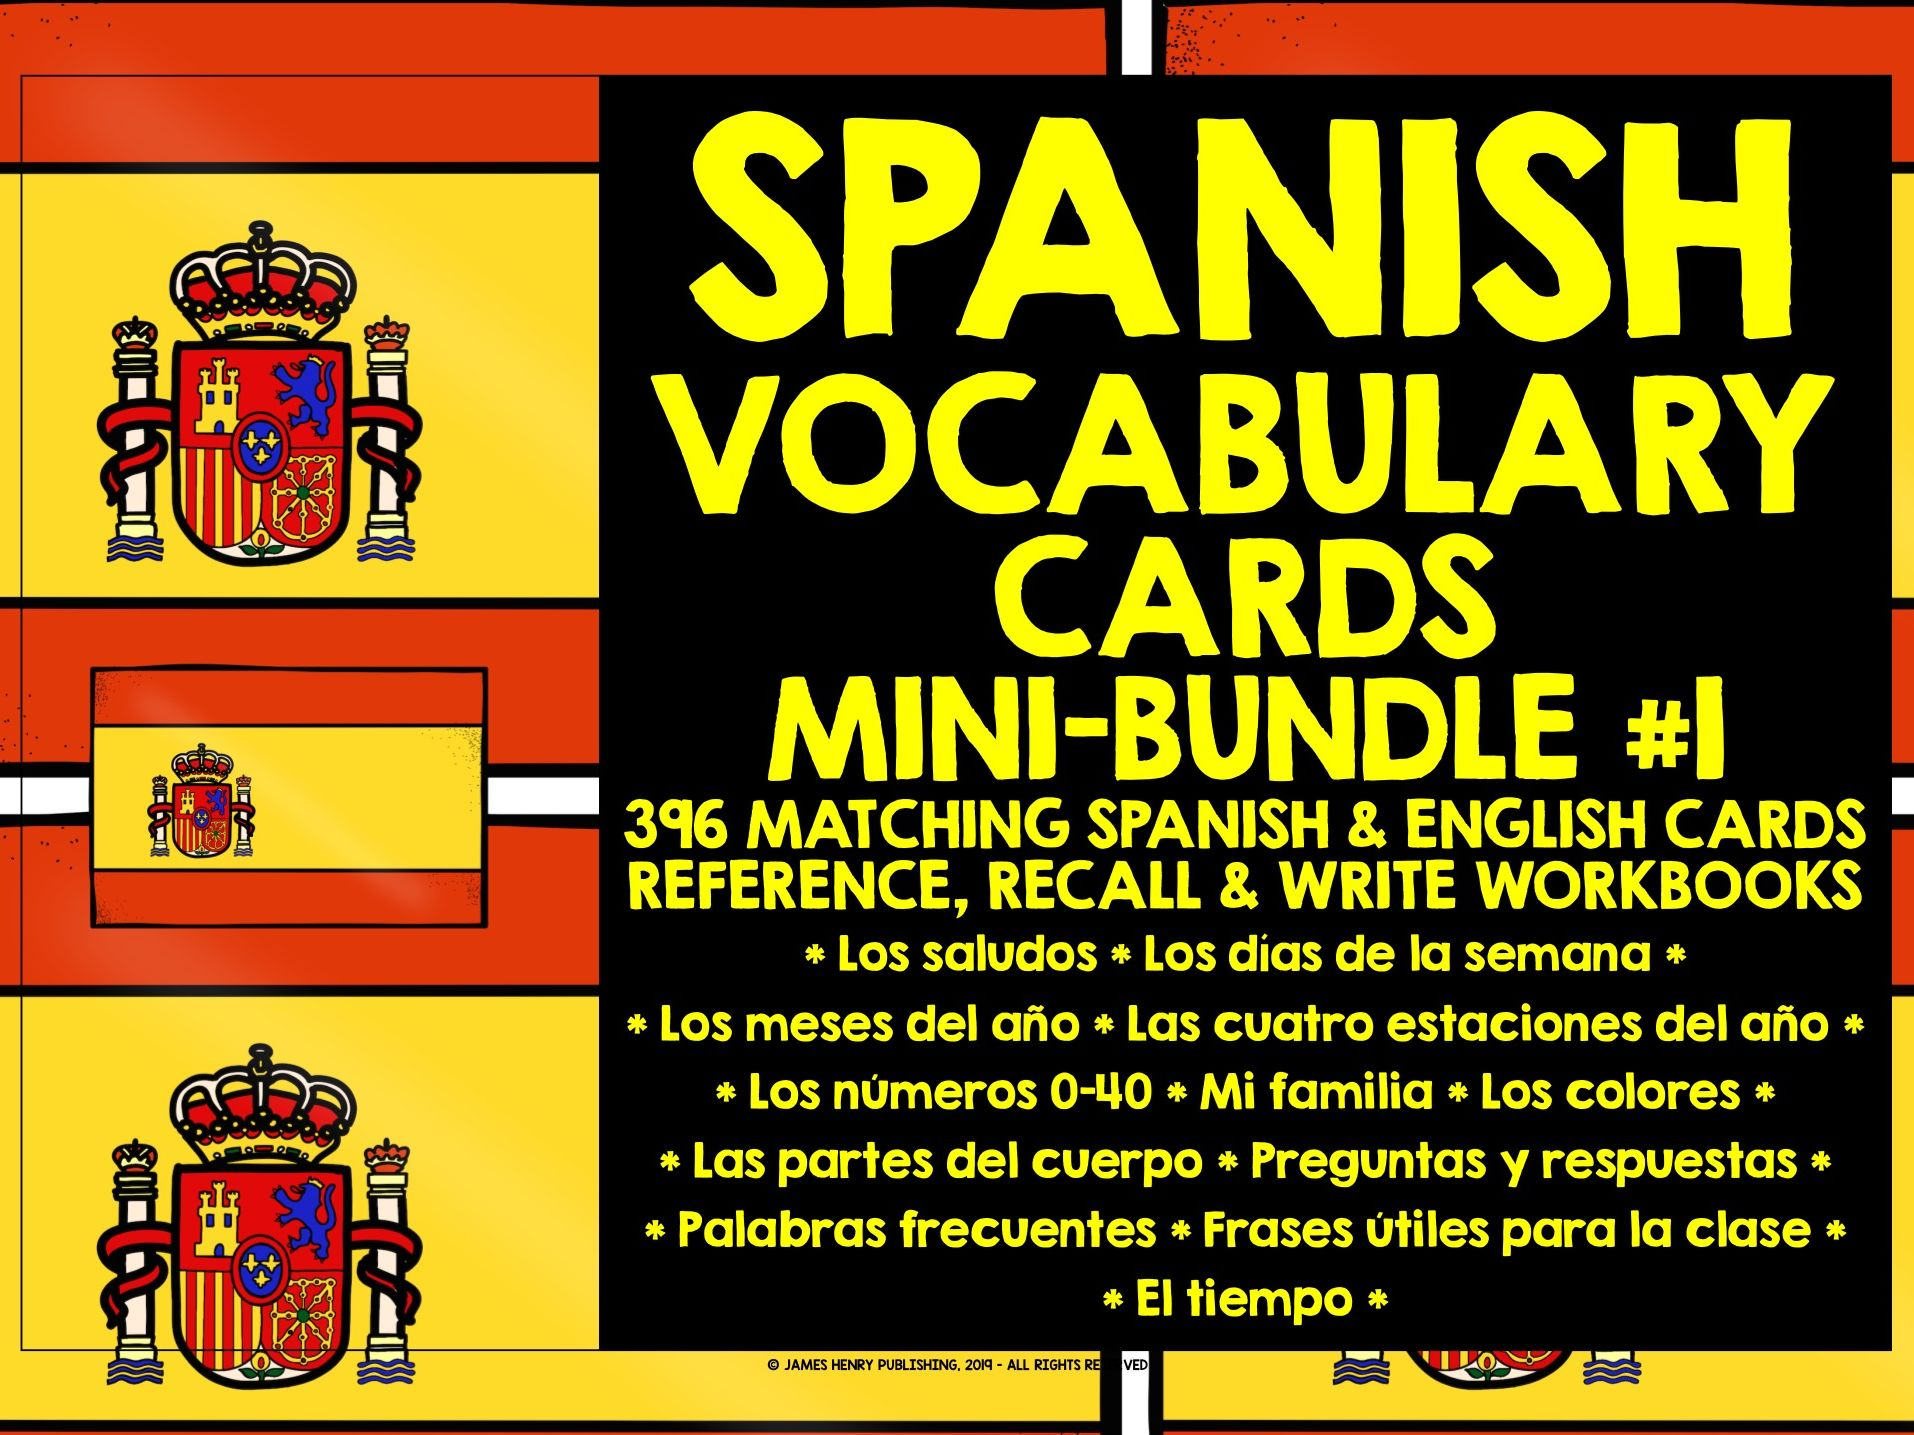 SPANISH VOCABULARY CARDS MINI-BUNDLE